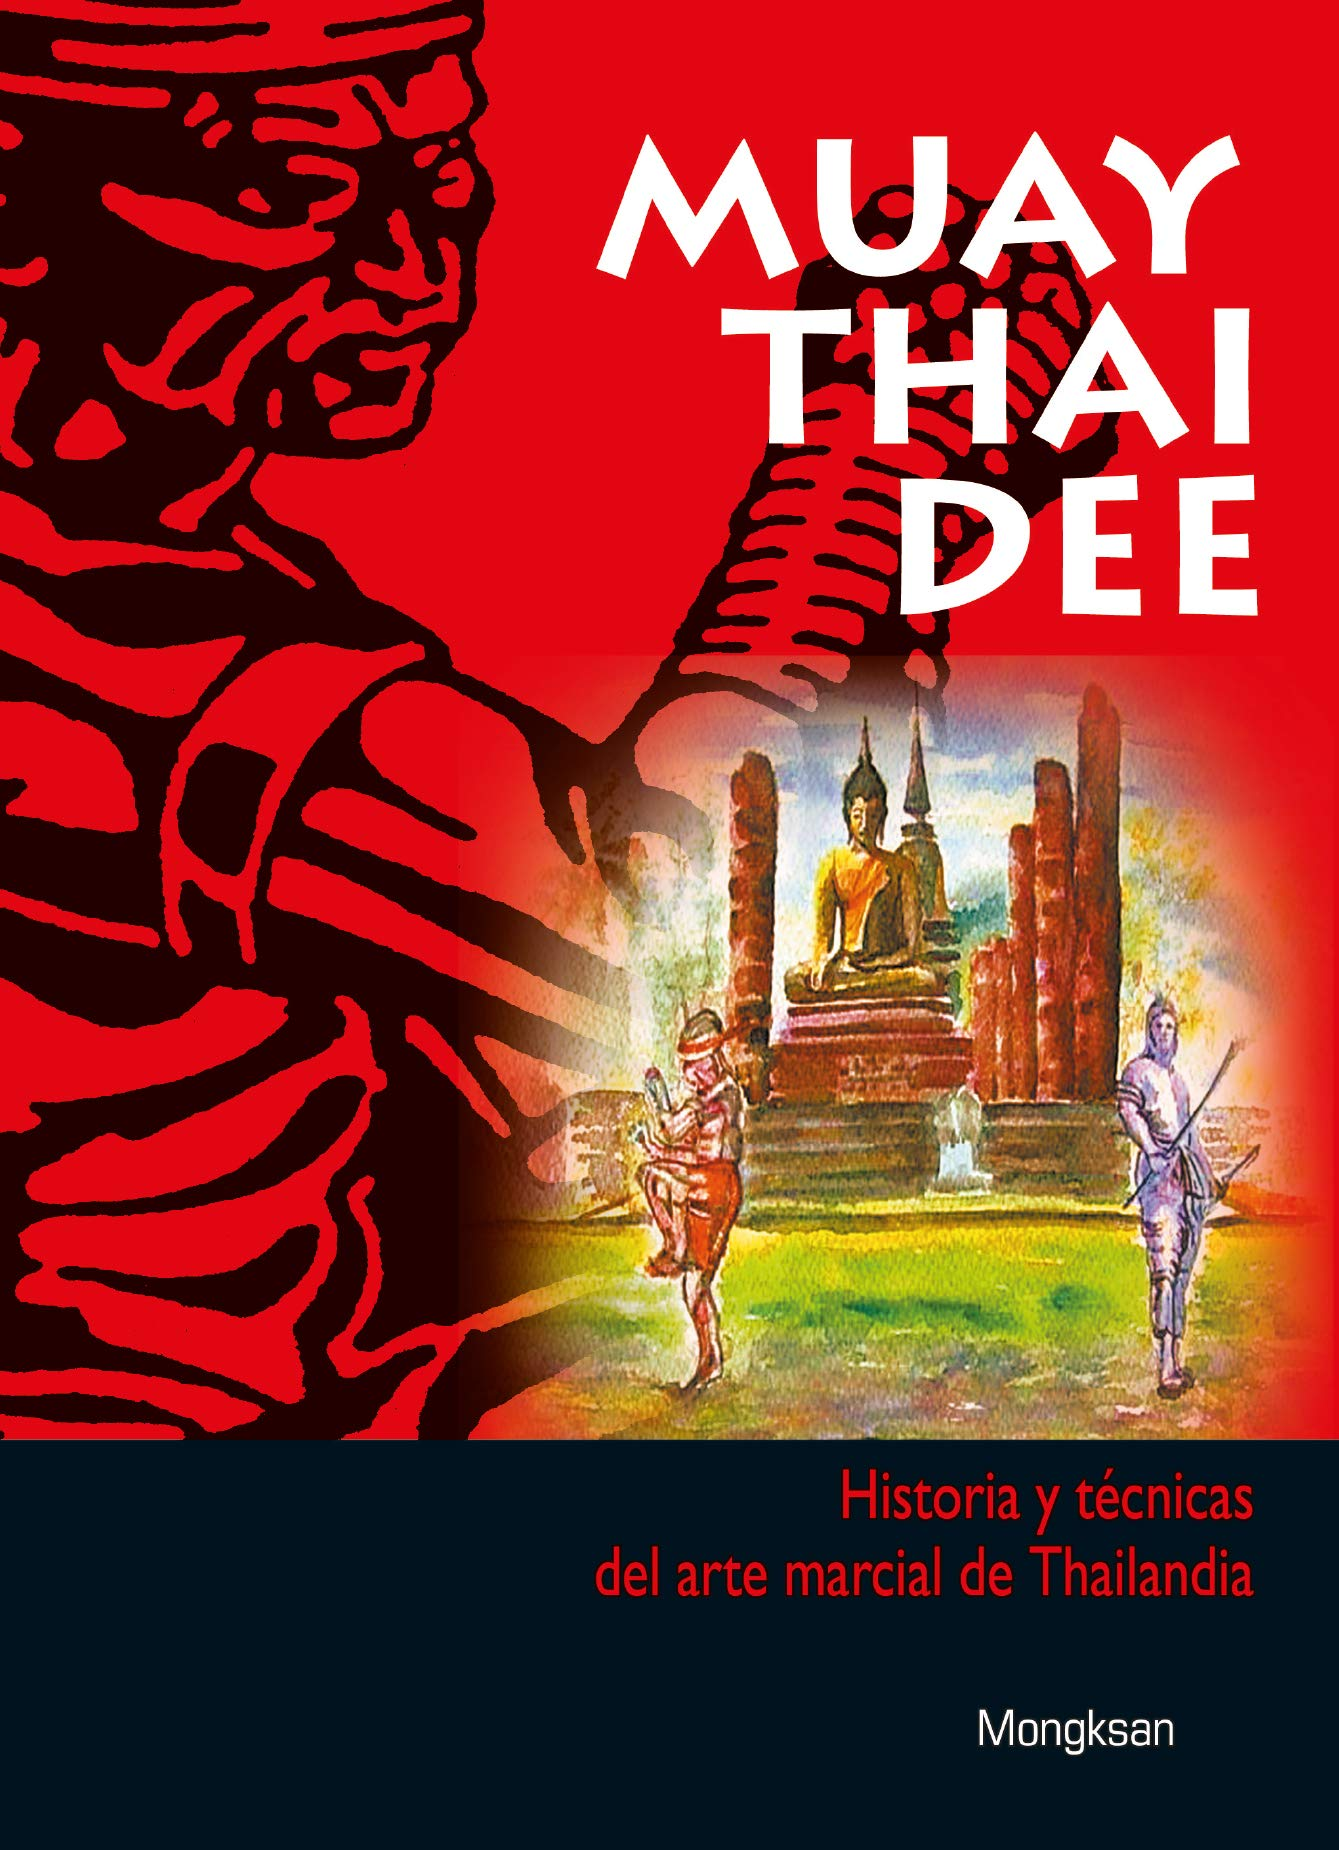 Muay Thai Dee (Spanish Edition) (Spanish) Paperback – April 2, 2008